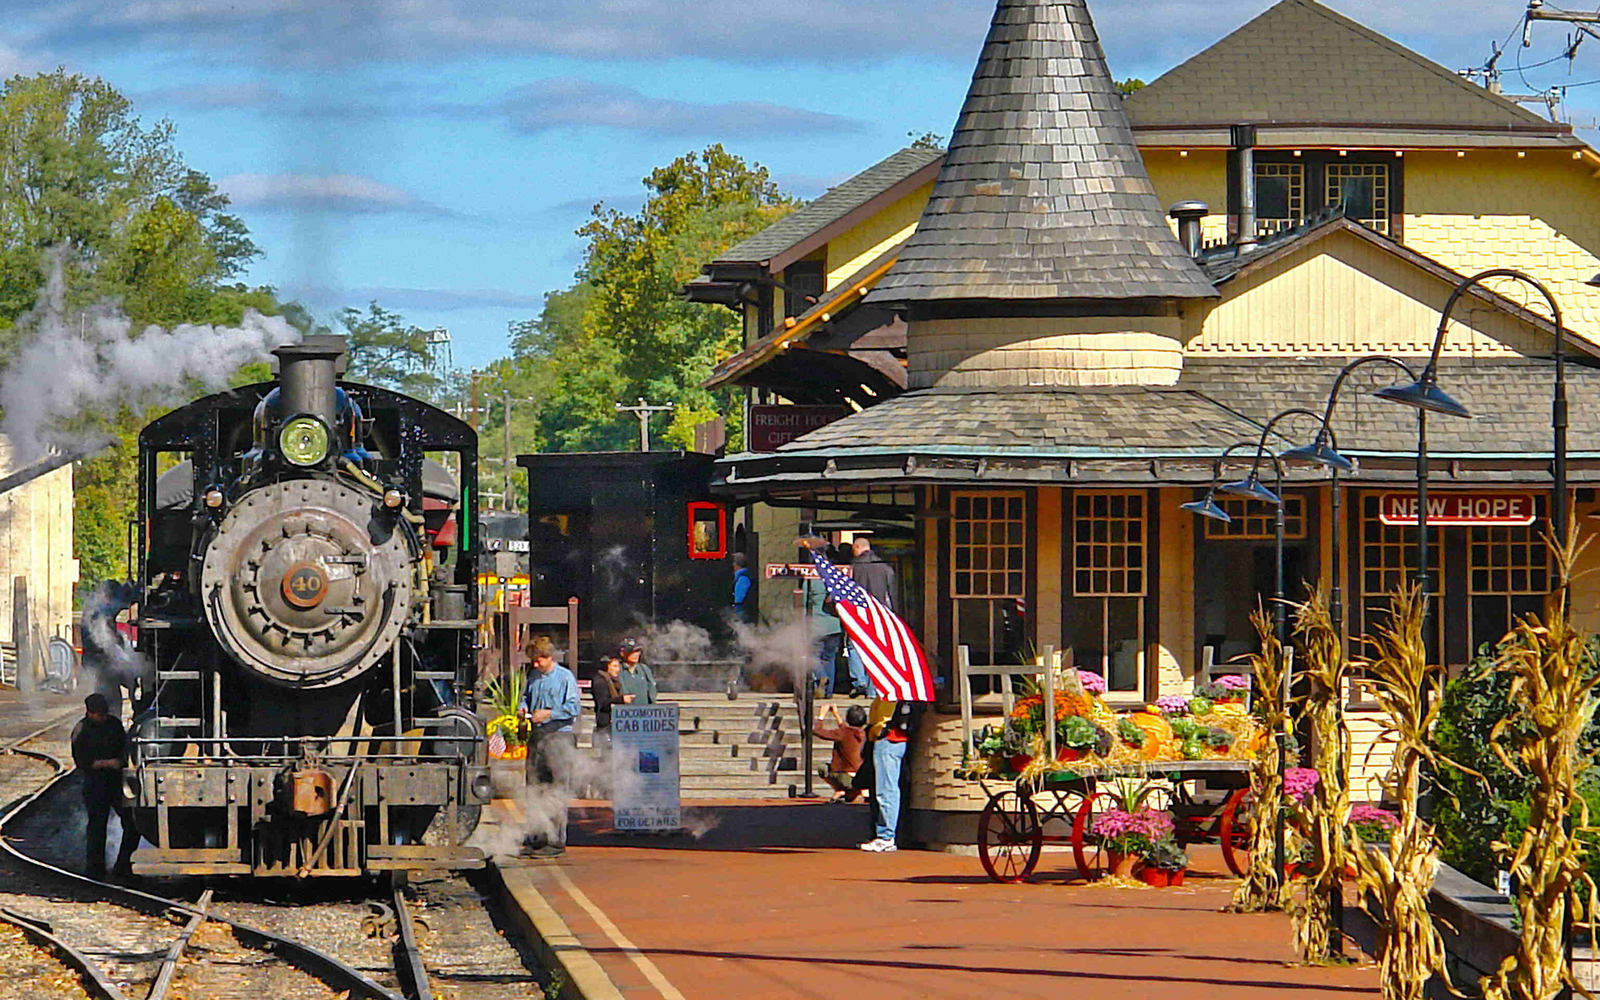 steam train at train station in New Hope, Pennsylvania